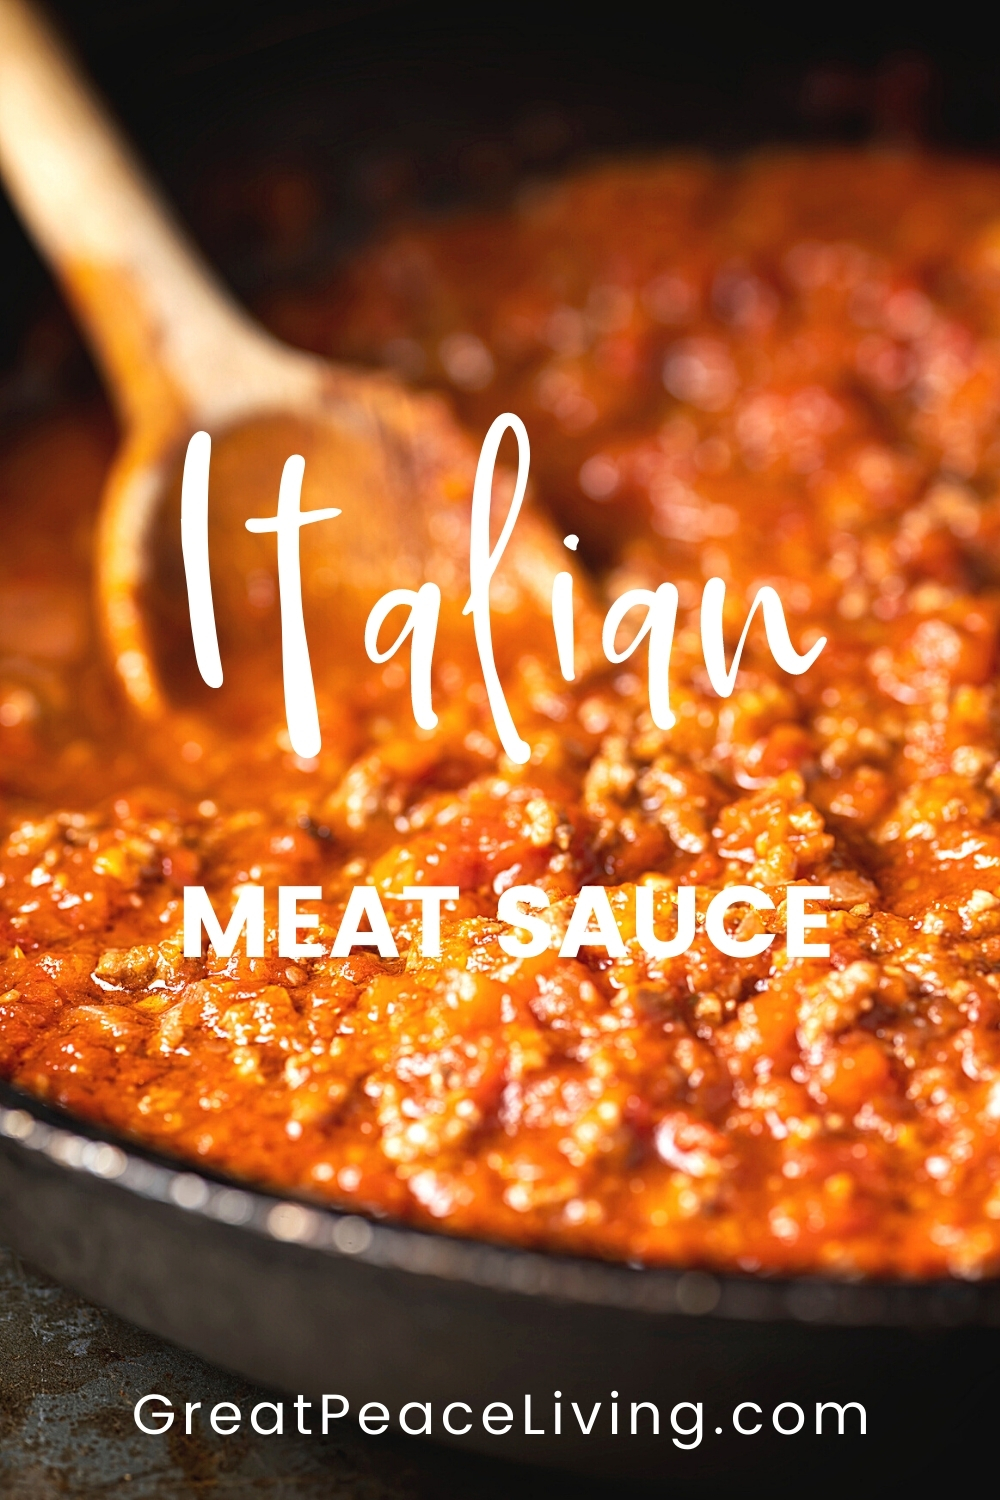 How to Make Italian Meat Sauce From Scratch | GreatPeaceLiving.com #mealplanning #familydinnerideas #dinnerrecipes #Italianmeatsauce